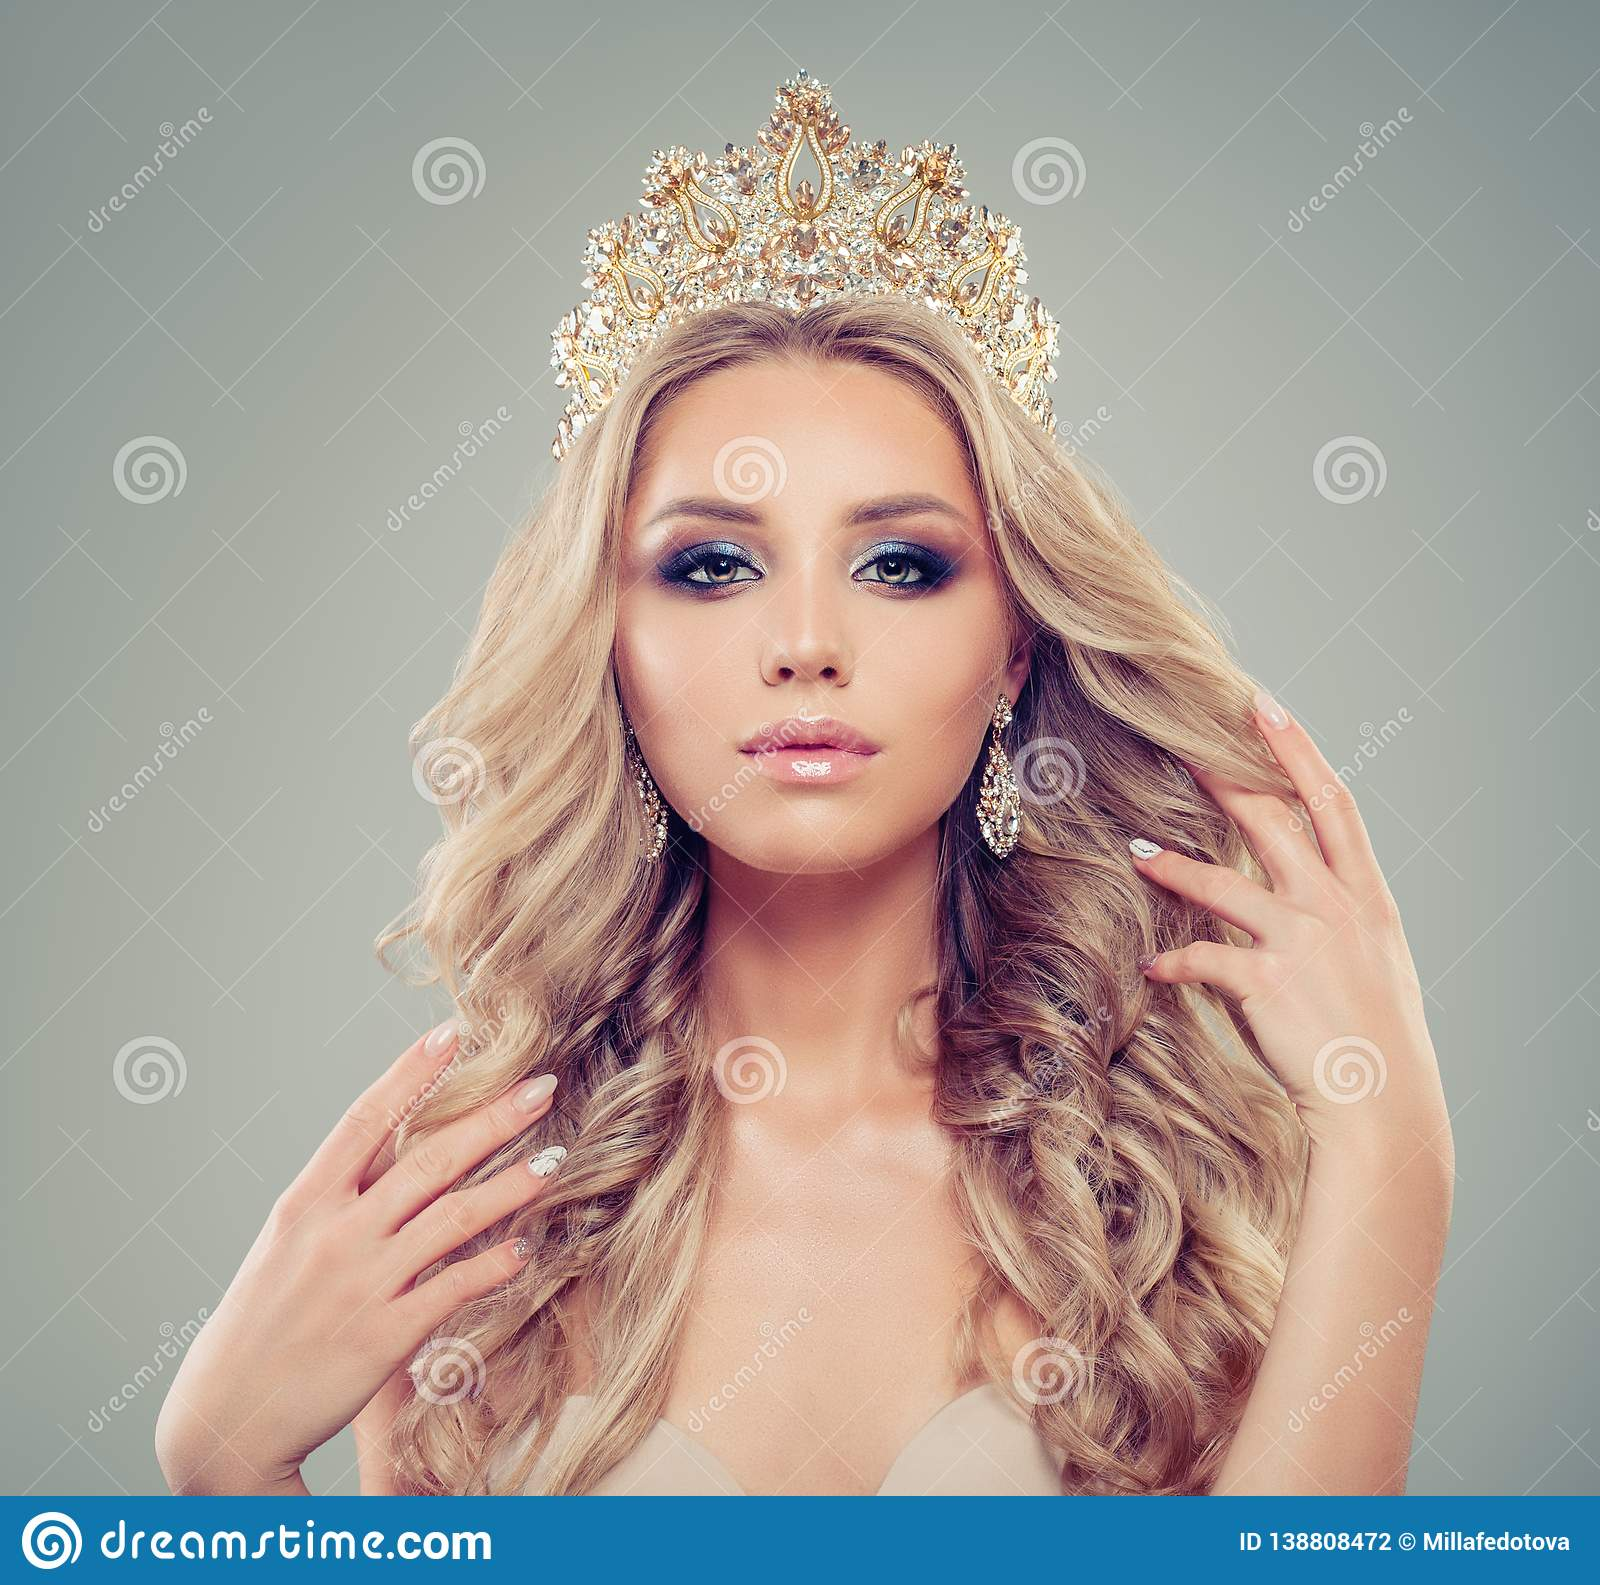 Elegant blonde woman with makeup, long healthy curly hairstyle, gold jewelry crown and earrings, portrait